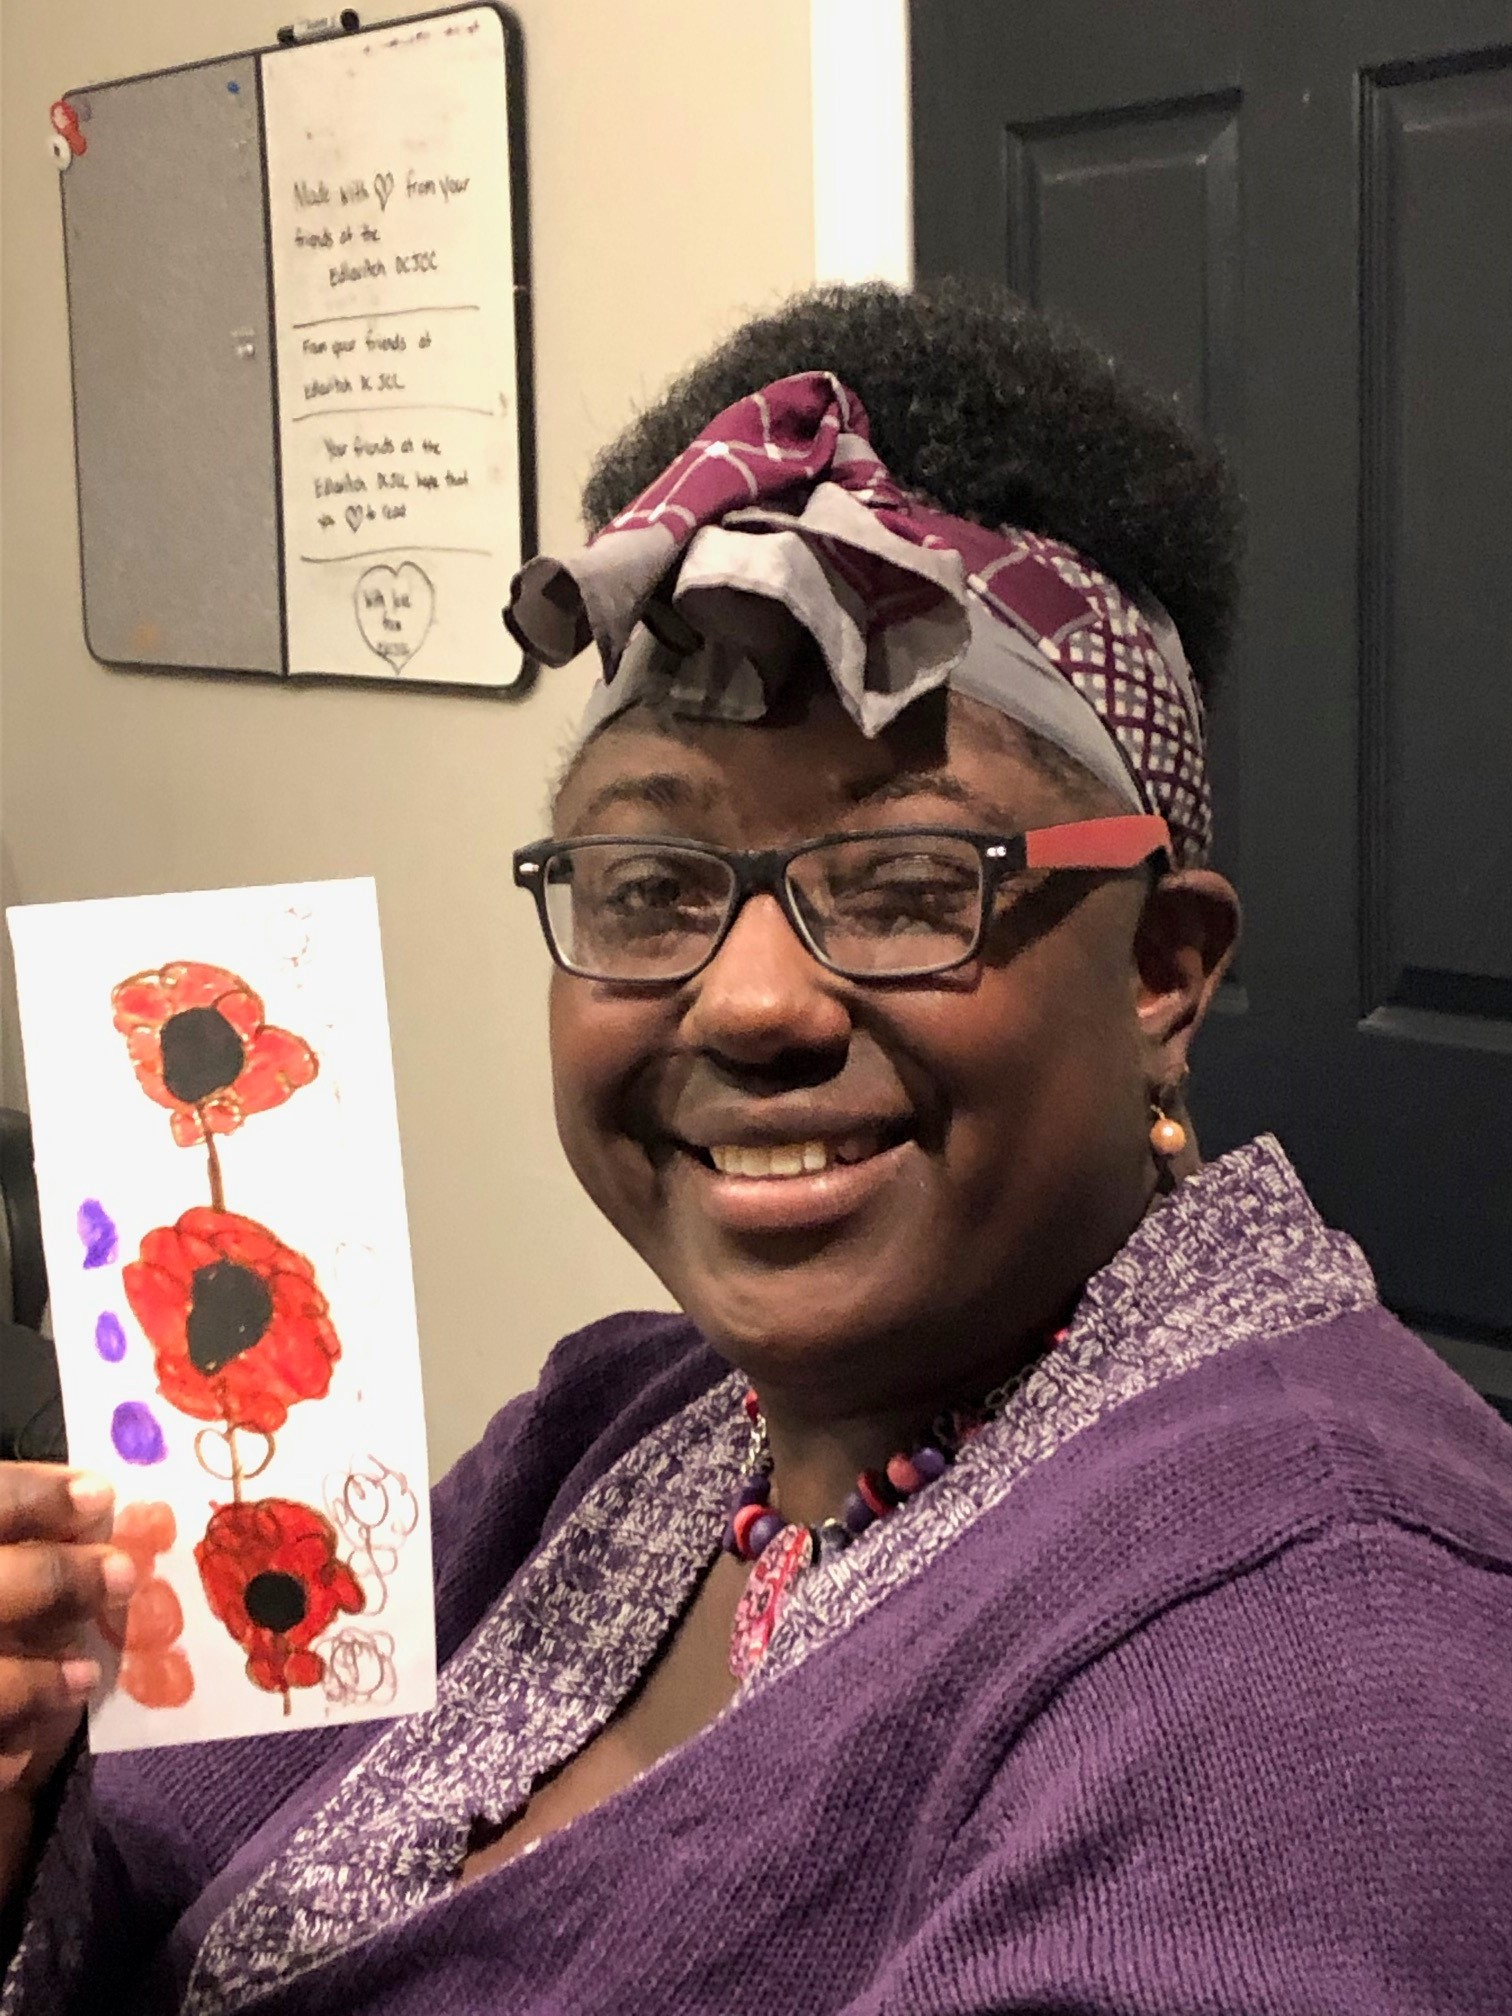 Image is of a smiling woman wearing a purple sweater and a grey/purple scarf around her wear. She is holding up a bookmark that is decorated with red and pink flowers.